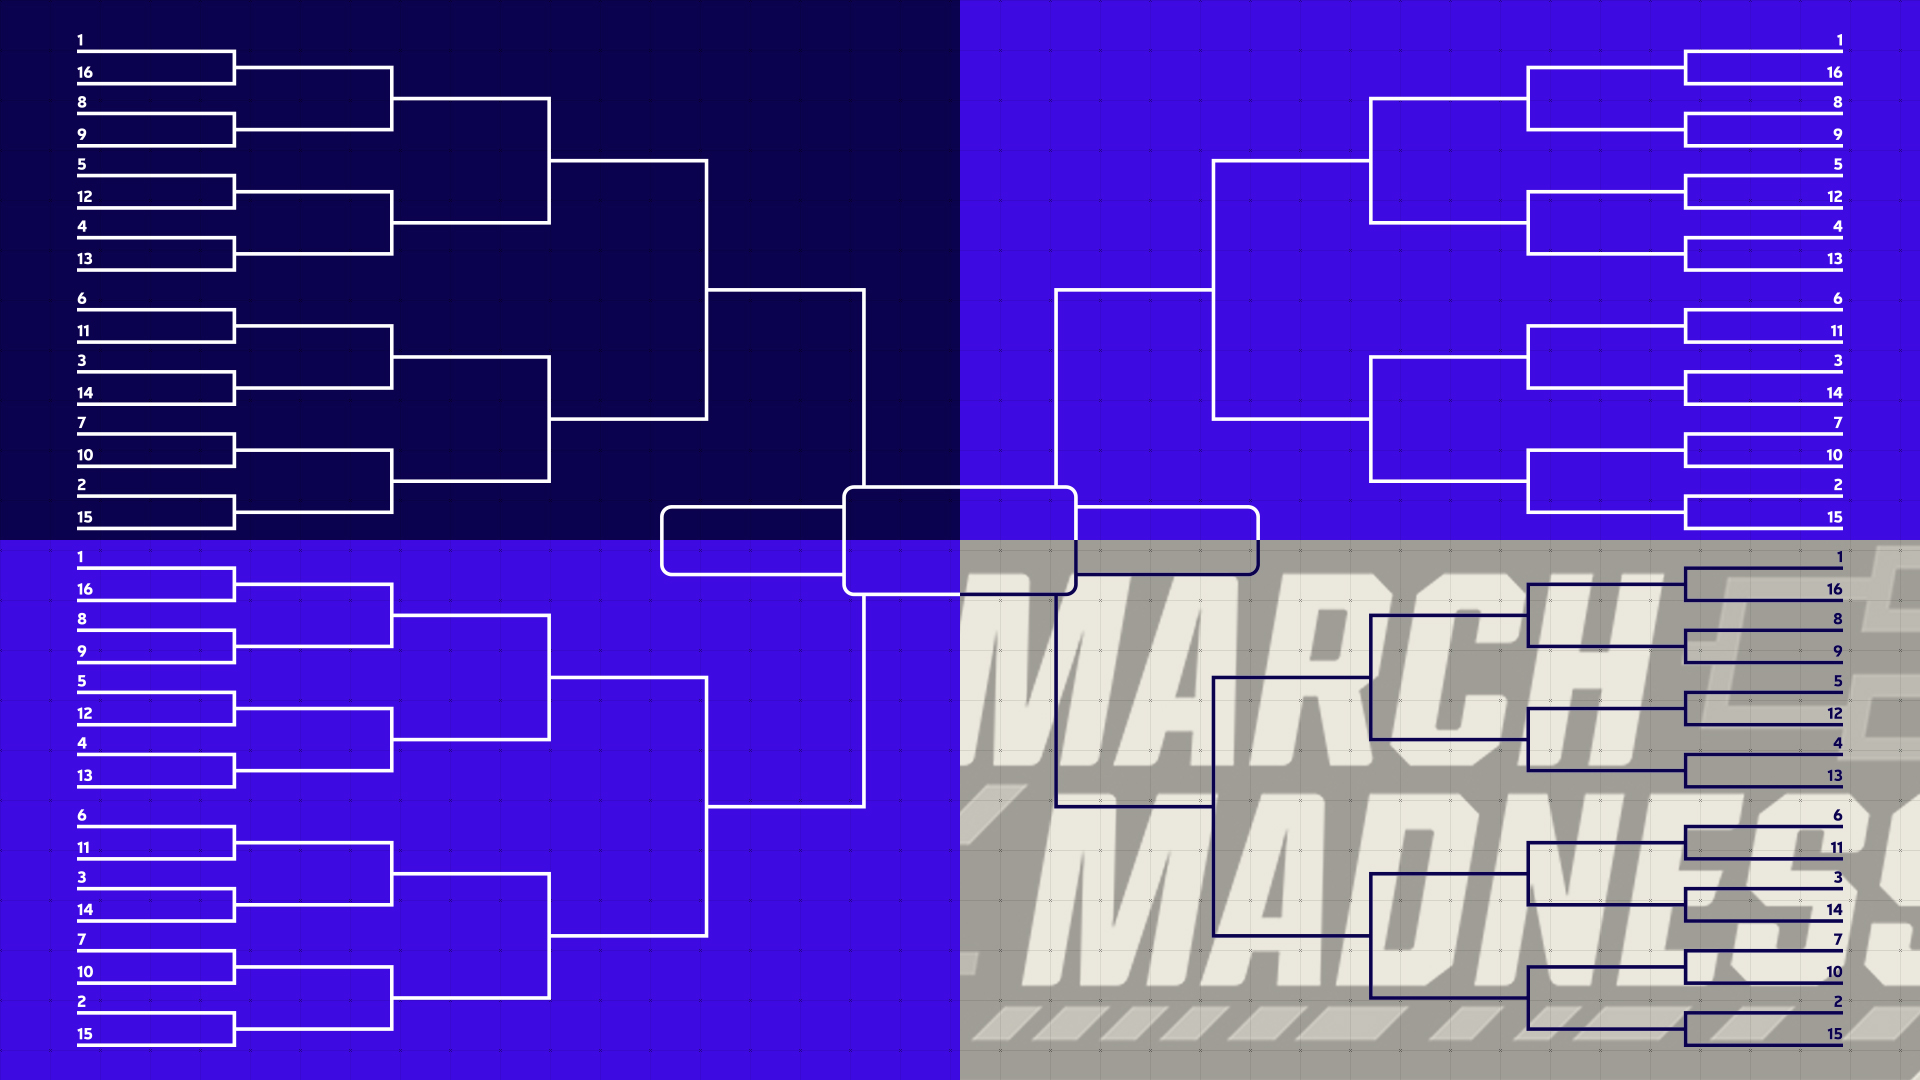 Missing March Madness 2020: Sweet 16 resultados de votación del grupo de torneos de la NCAA, Día 2 48